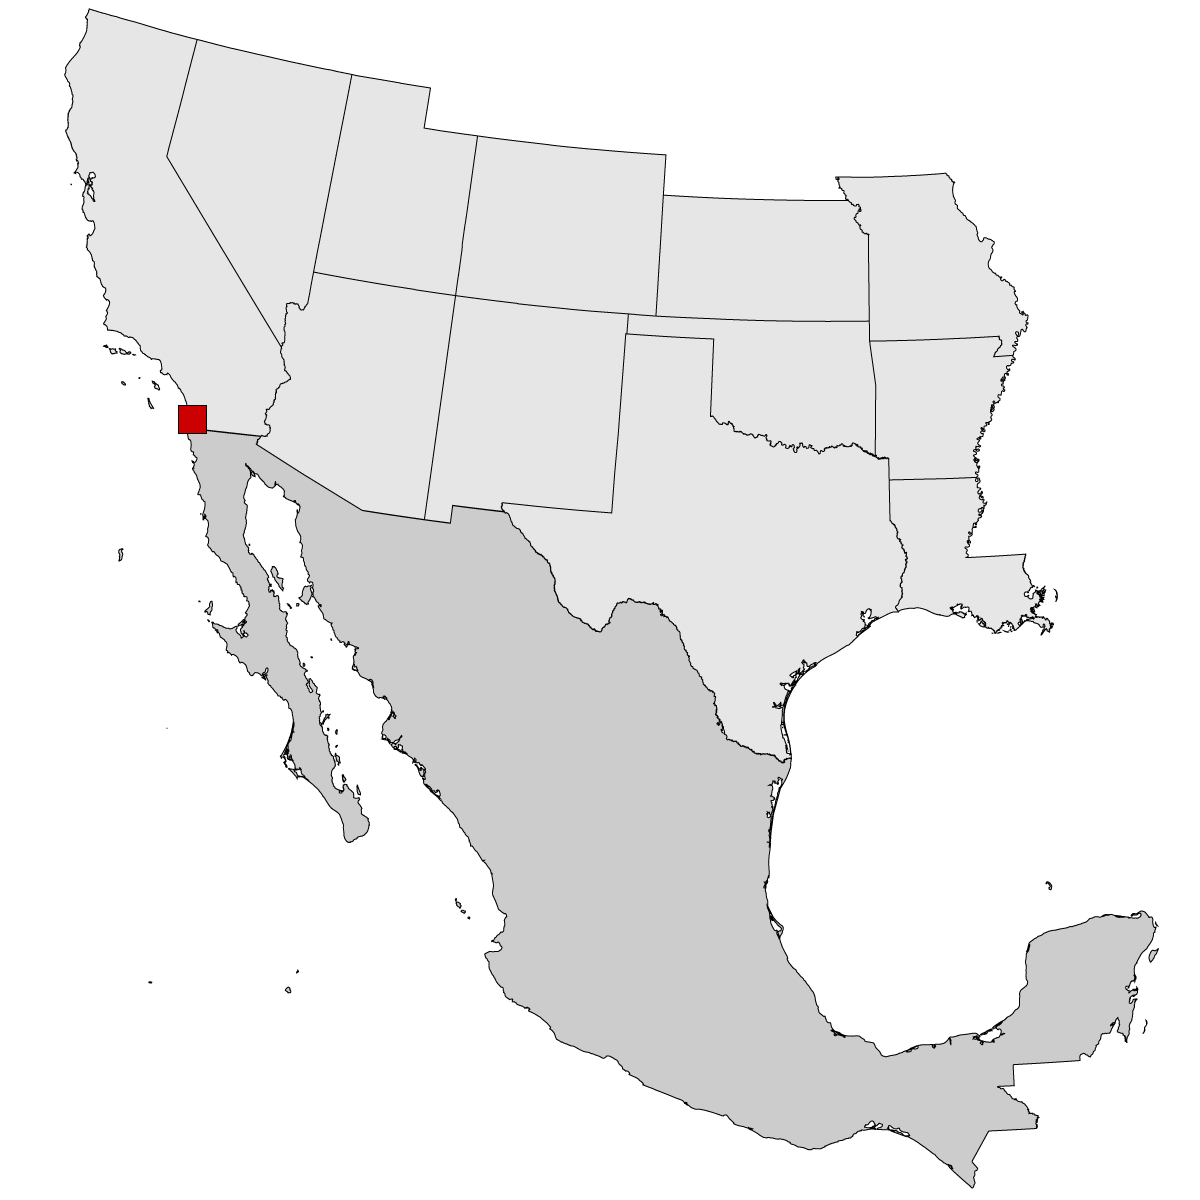 Us Mexican Border Map This is what the US Mexico border looks like   CNN.com